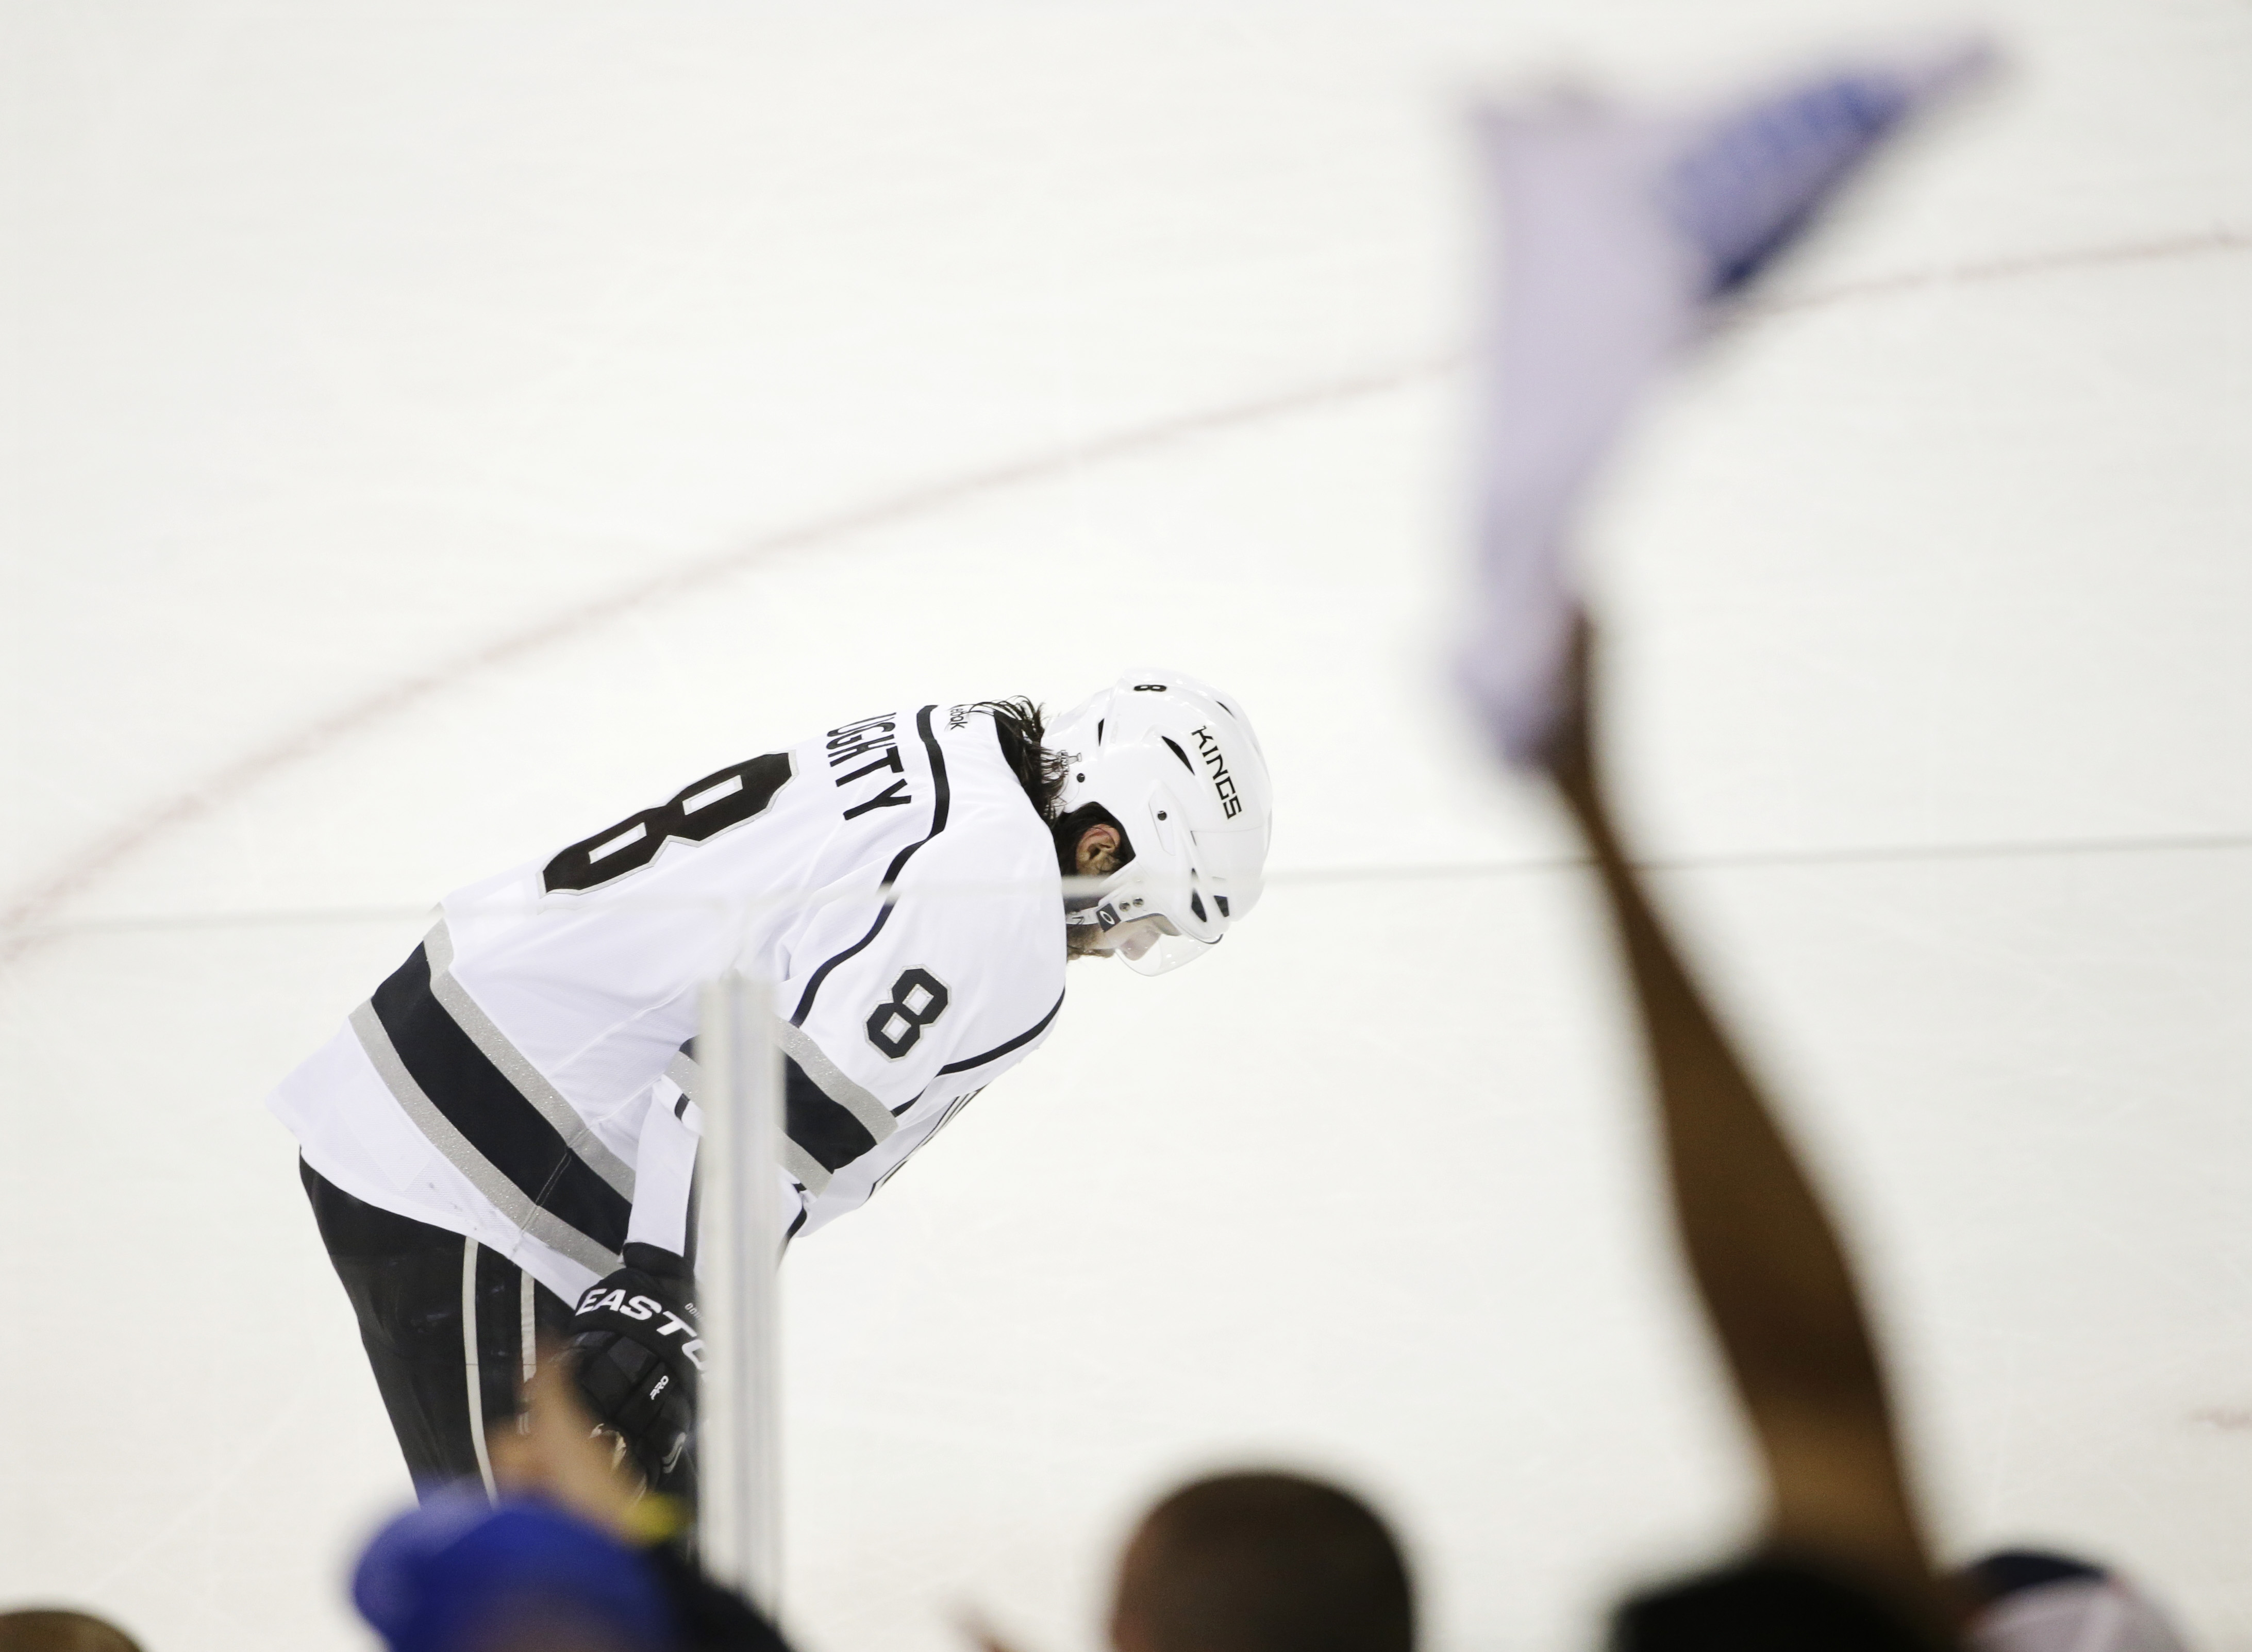 LA Kings not concerned with Rangers' Stanley Cup Final rally